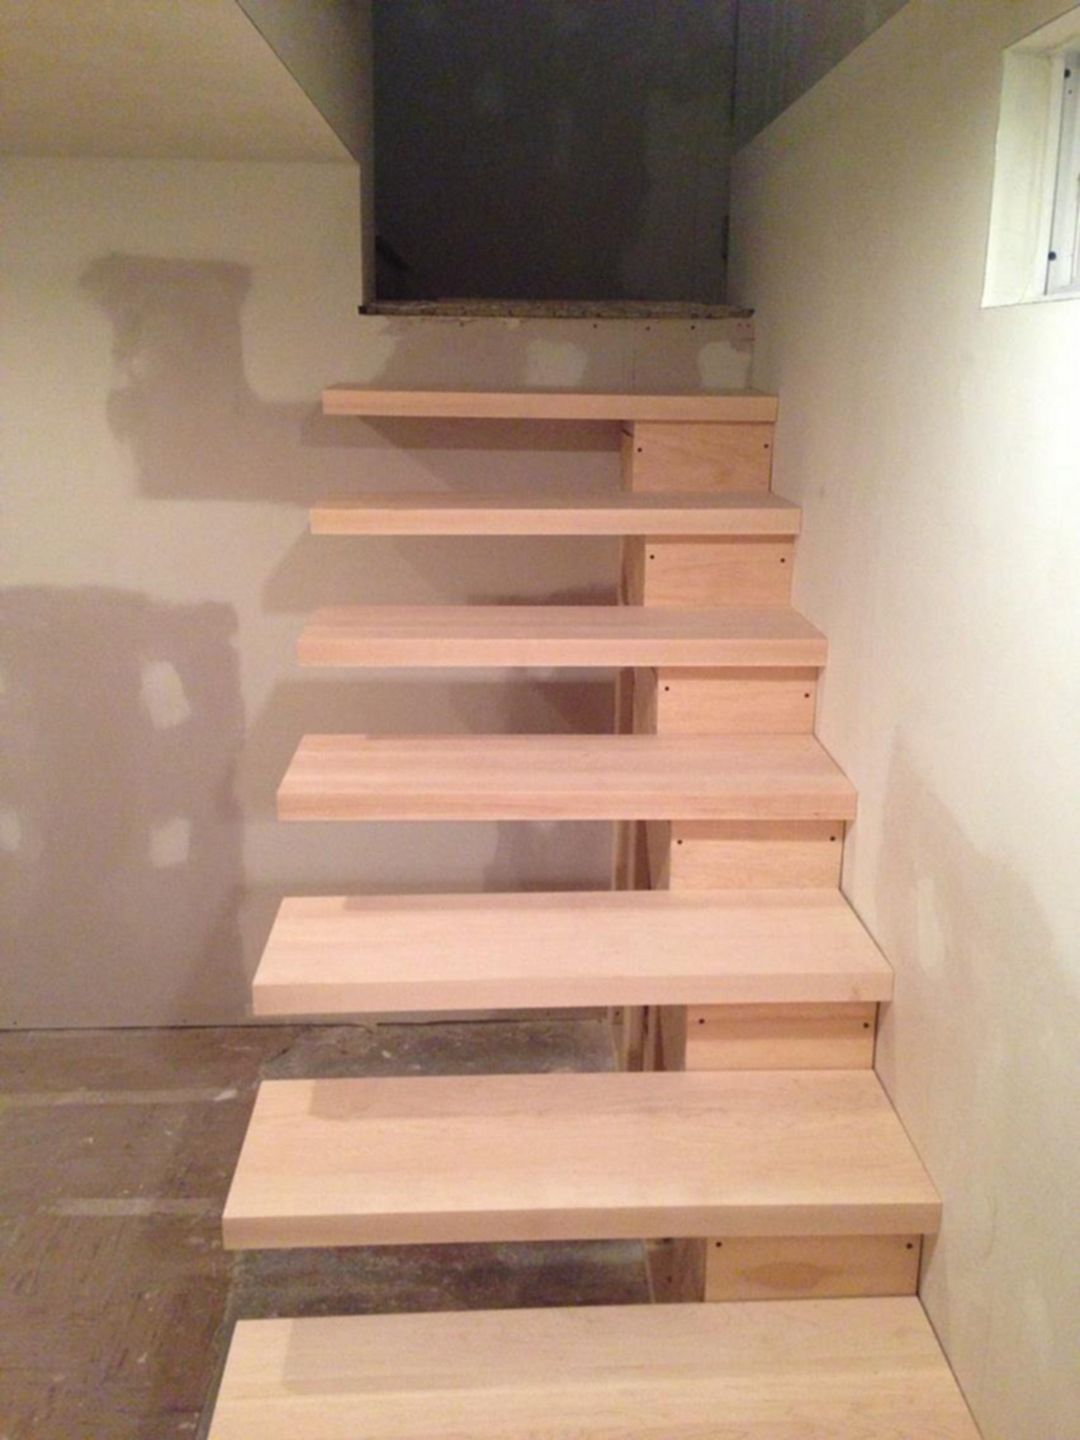 20 Incredible Floating Staircase Design Ideas To Looks Dazzling Floating Staircase Staircase Design Floating Stairs